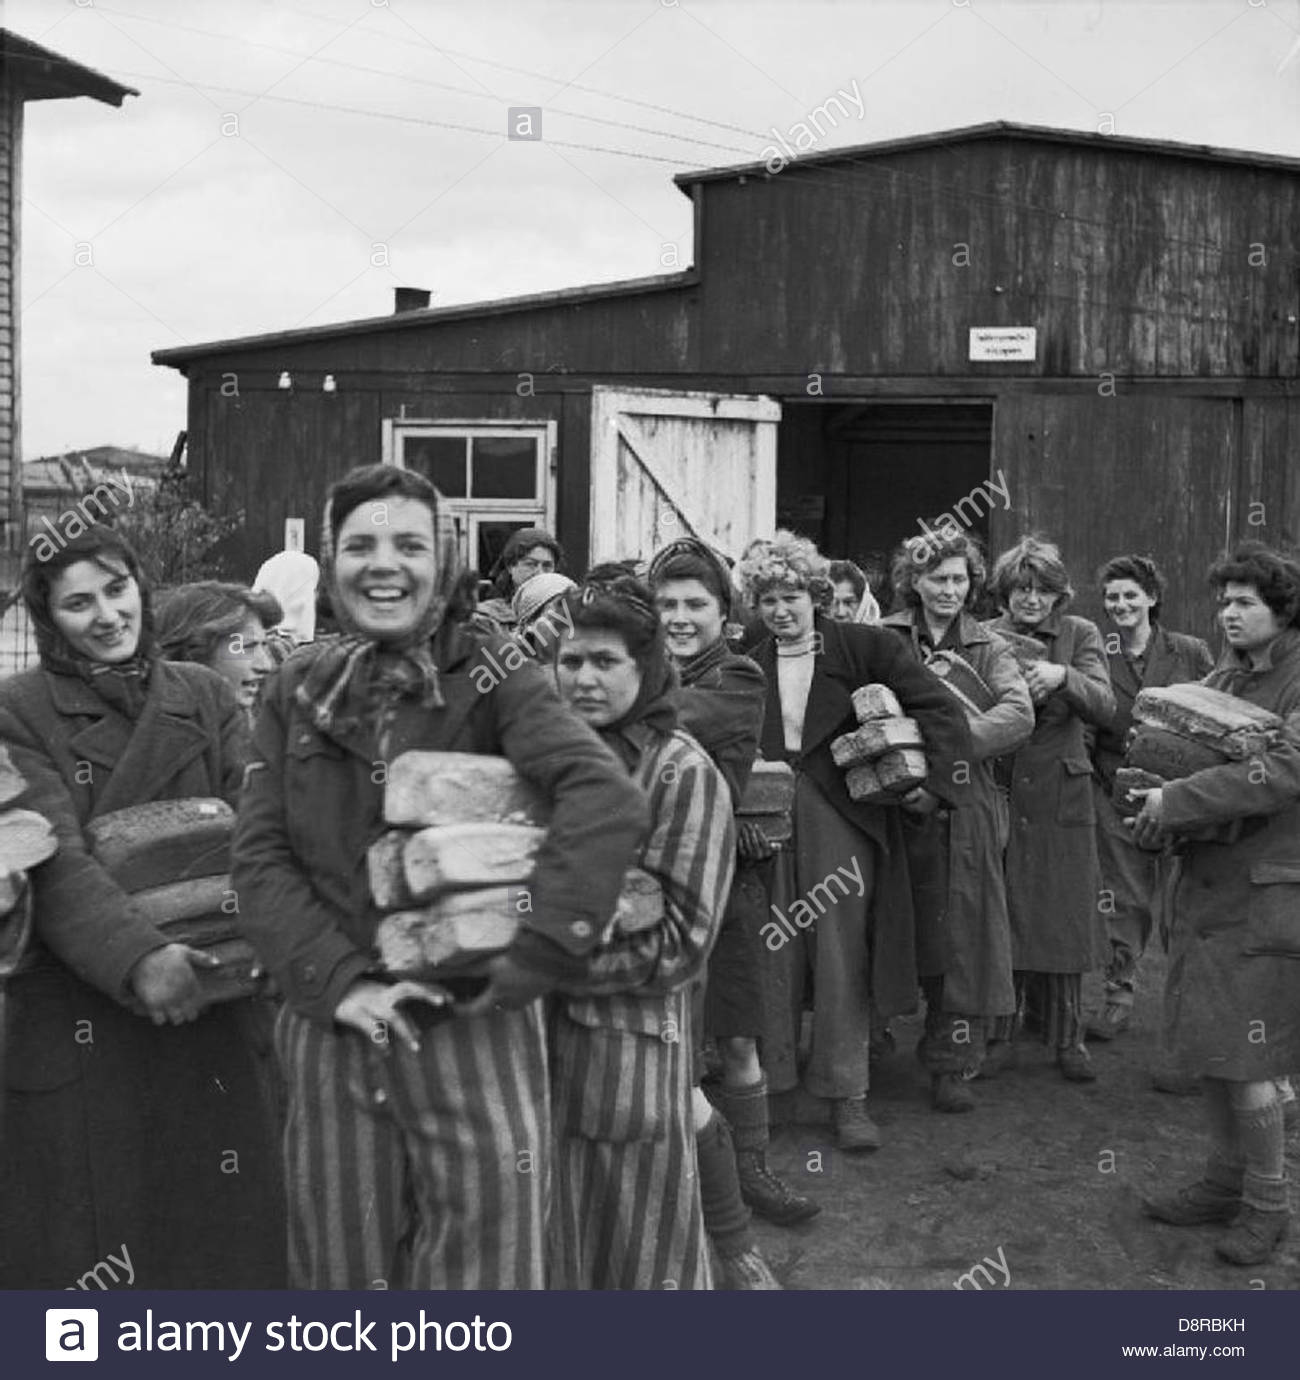 The Liberation of Bergen-belsen Concentration Camp, April 1945 BU4274. Stock Photo